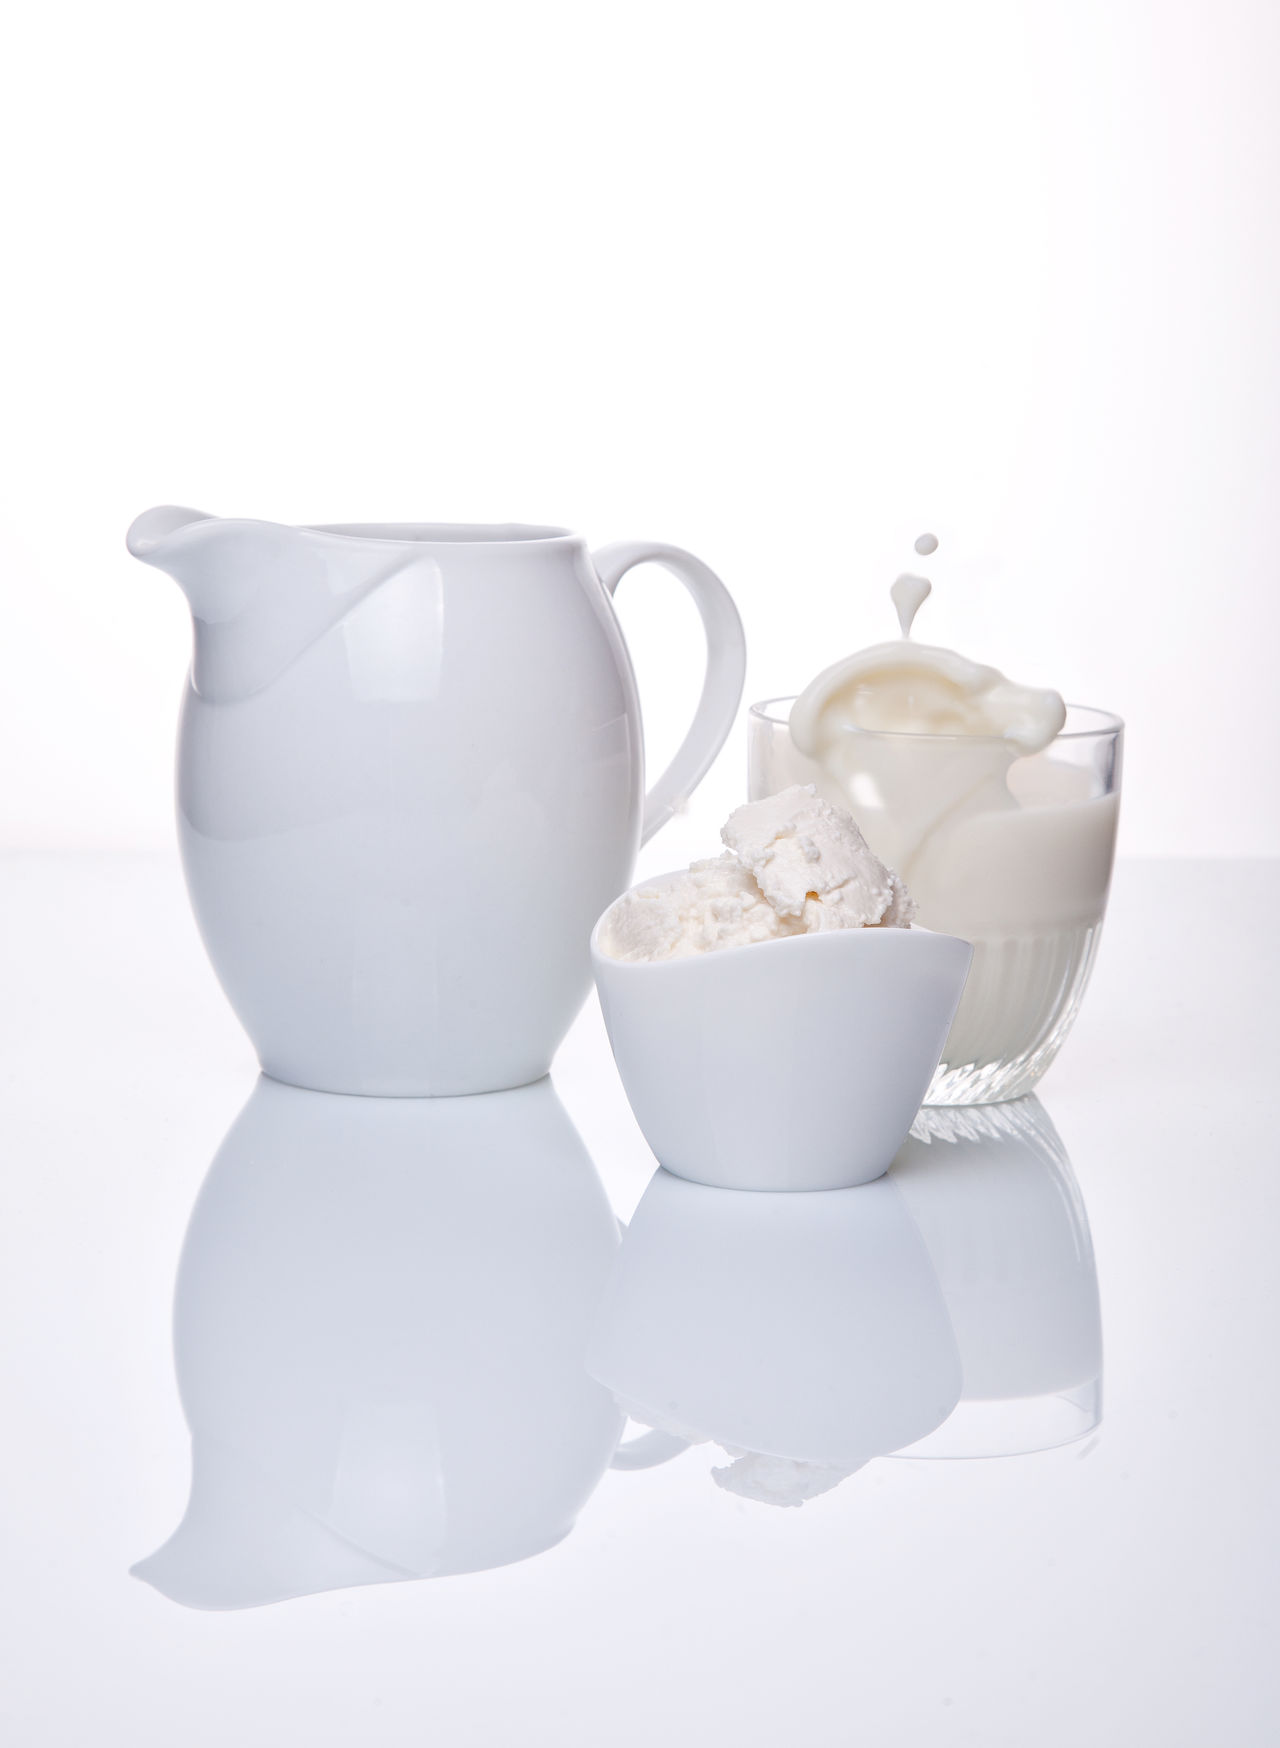 Bowl Cheese Close-up Cottage Cheese Day Drink Food And Drink Freshness Indoors  Milk No People Still Life Studio Shot Teapot White Background White On White